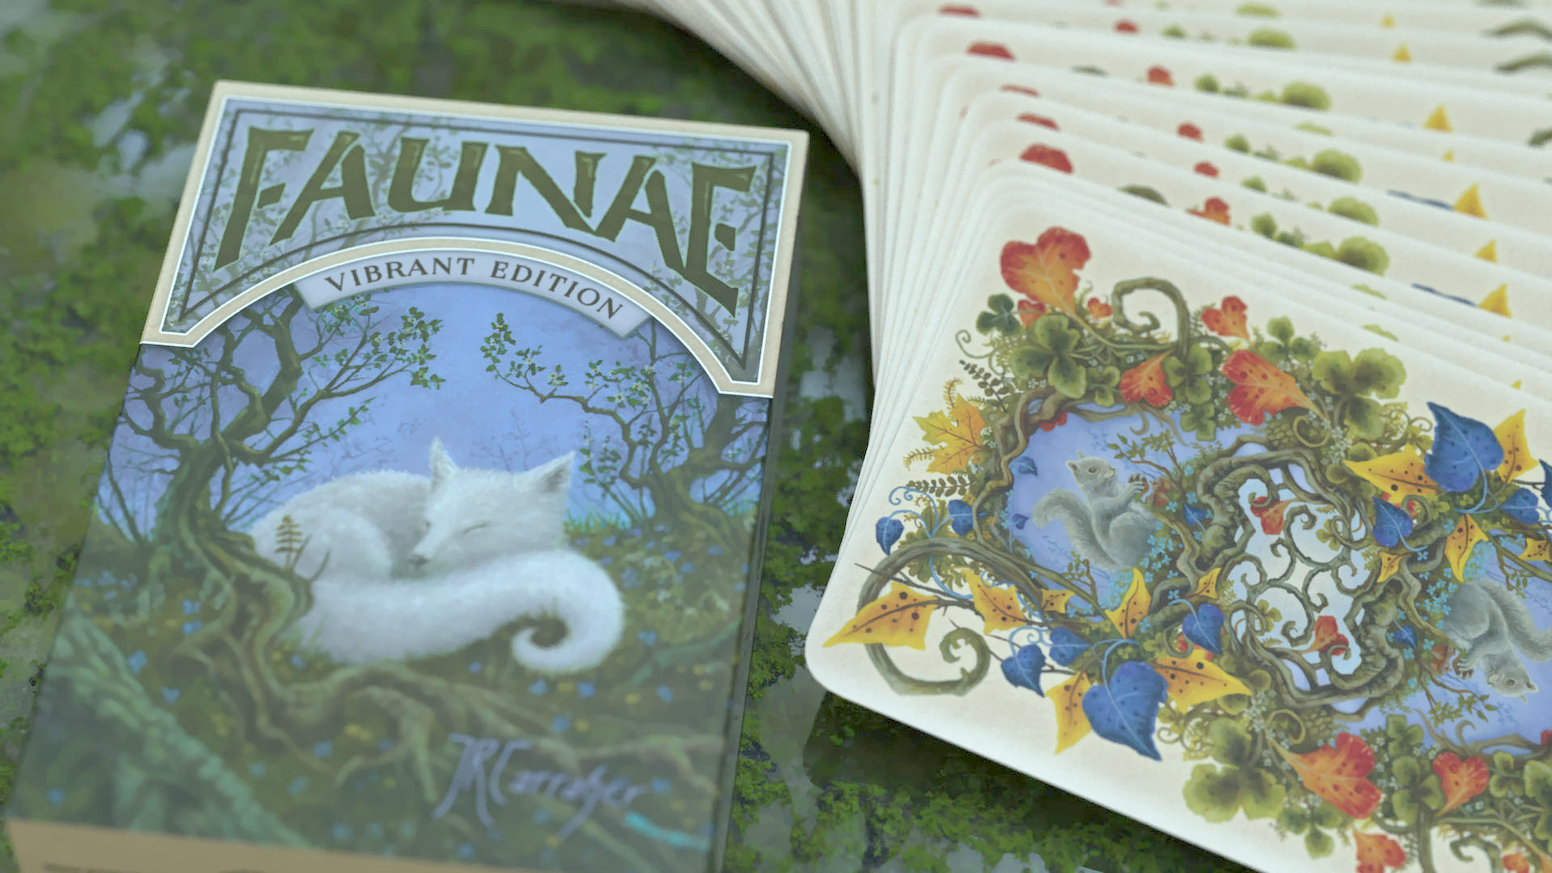 A playing card deck printed by USPCC created with the original fantasy and nature oil paintings of Jon Carraher.